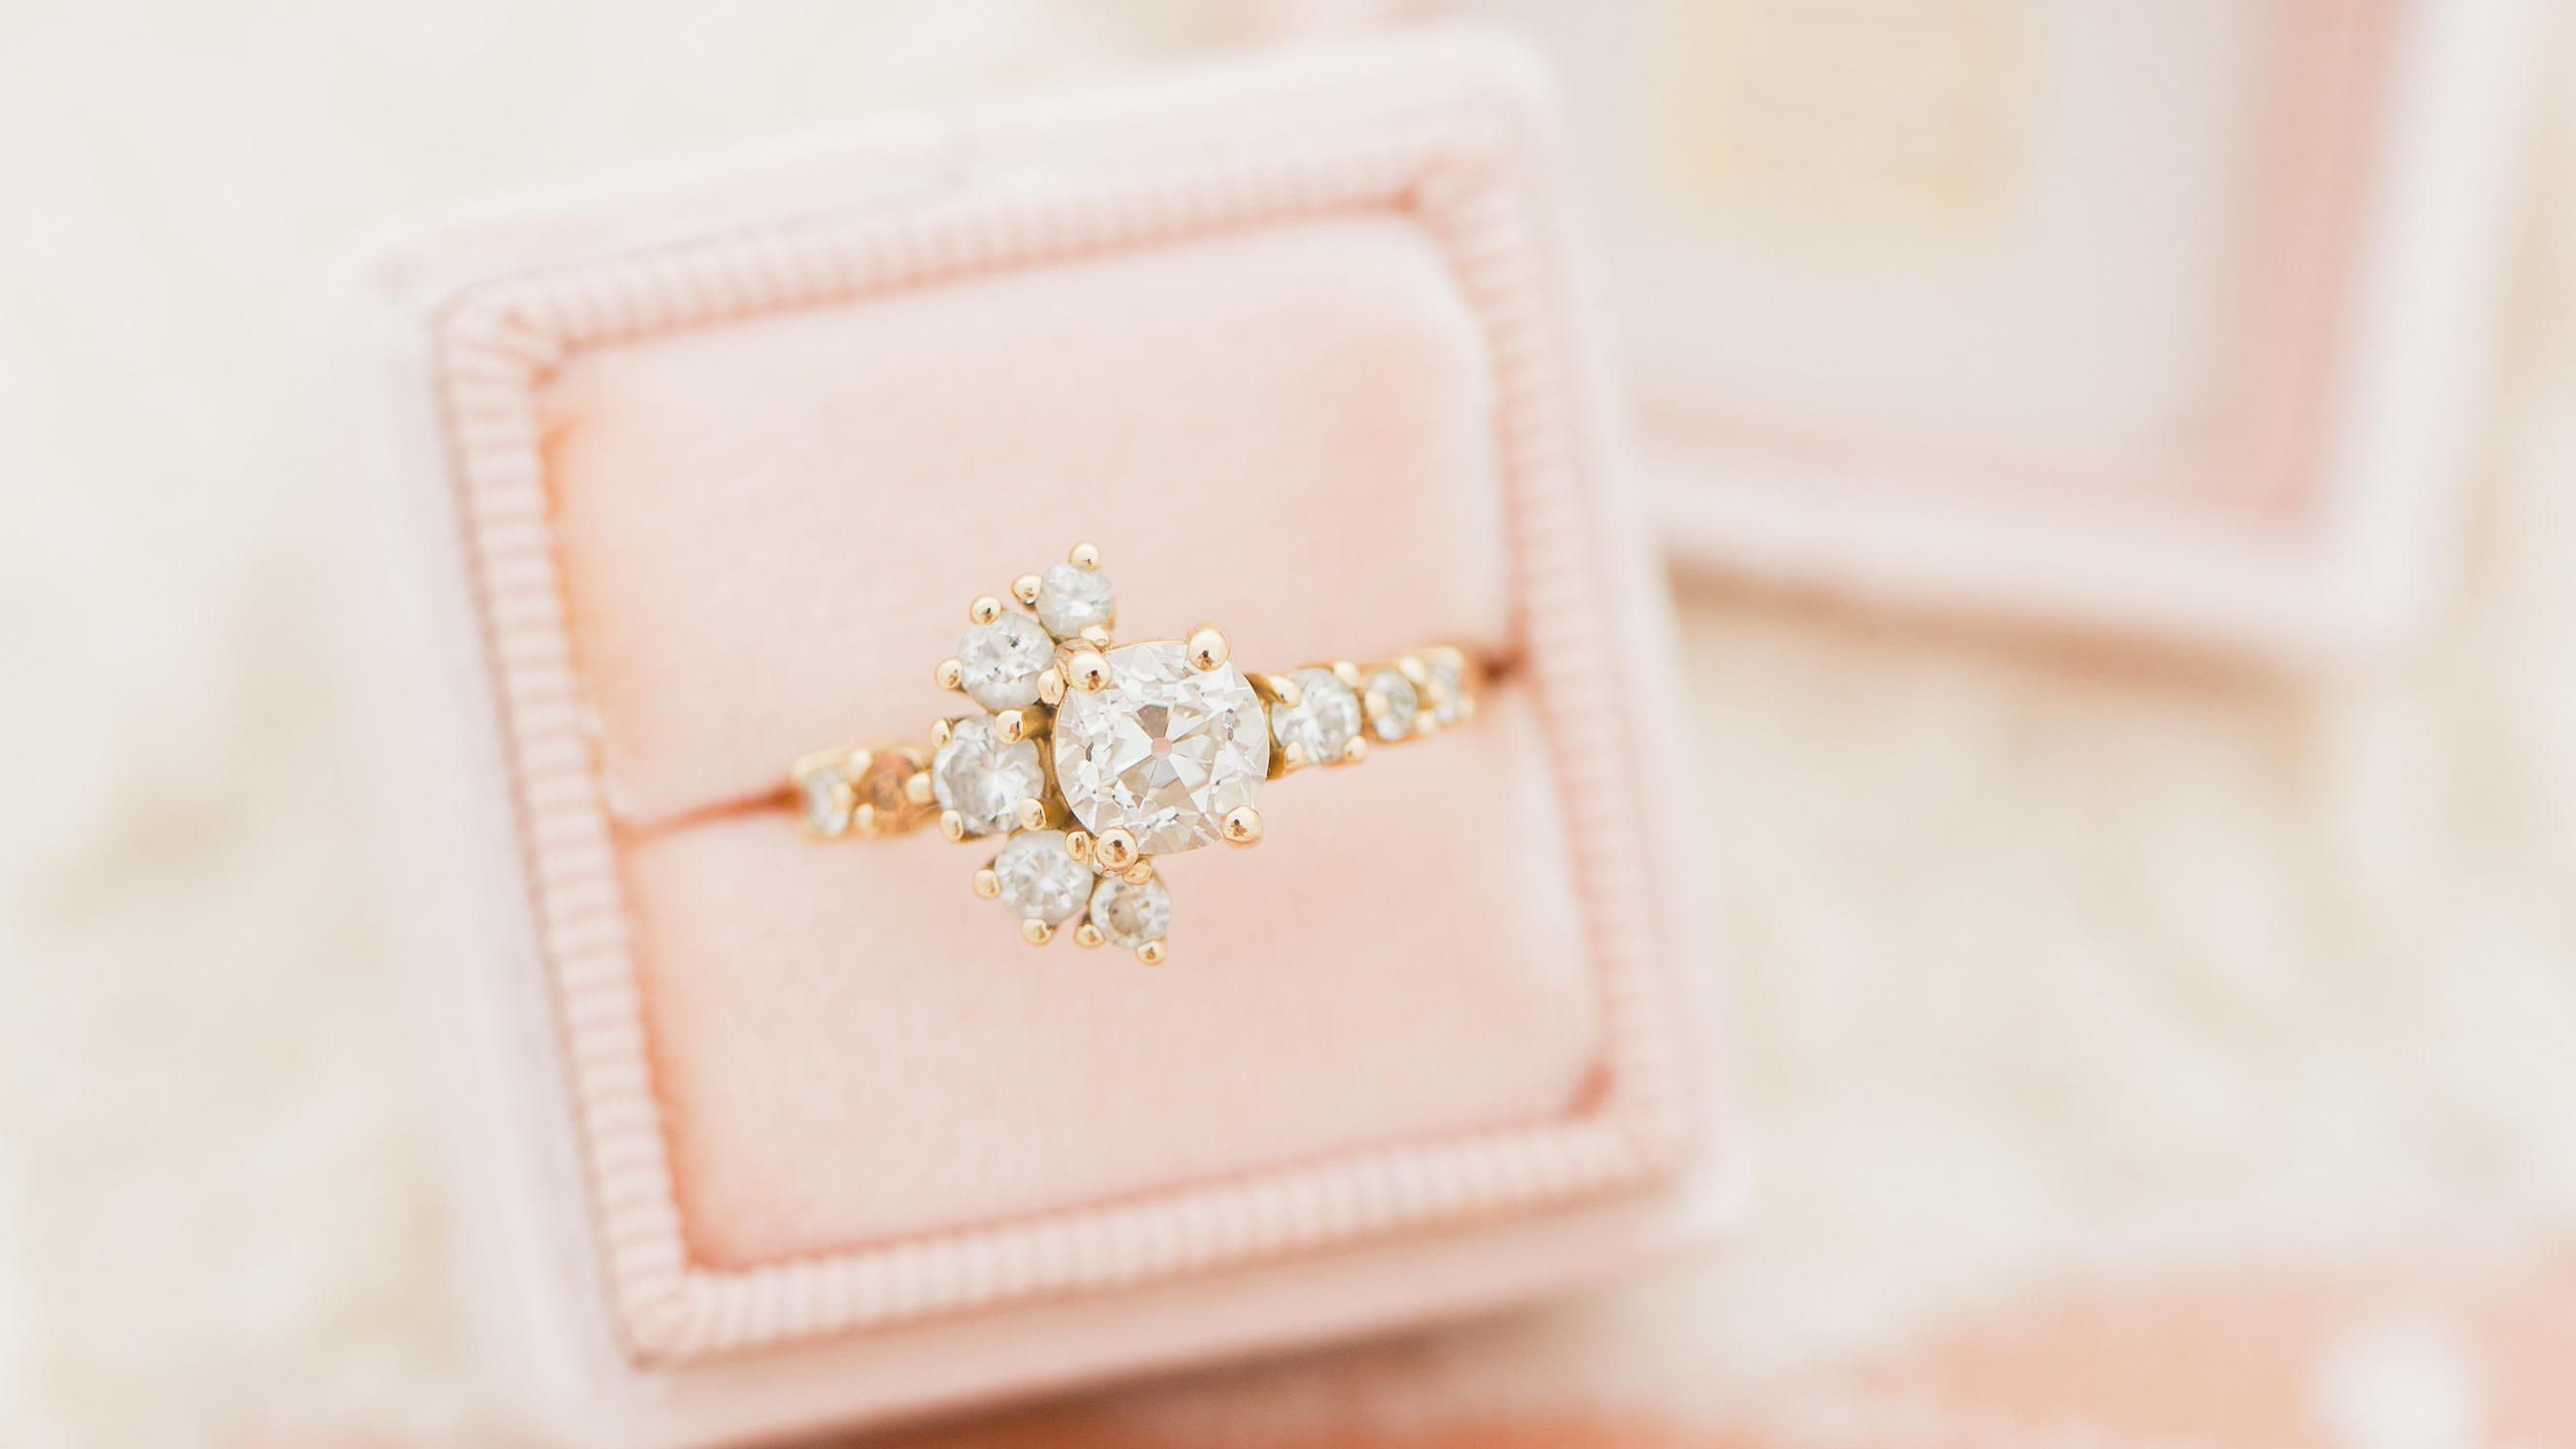 How To Upgrade The Diamond In Your Engagement Ring Guilt Free